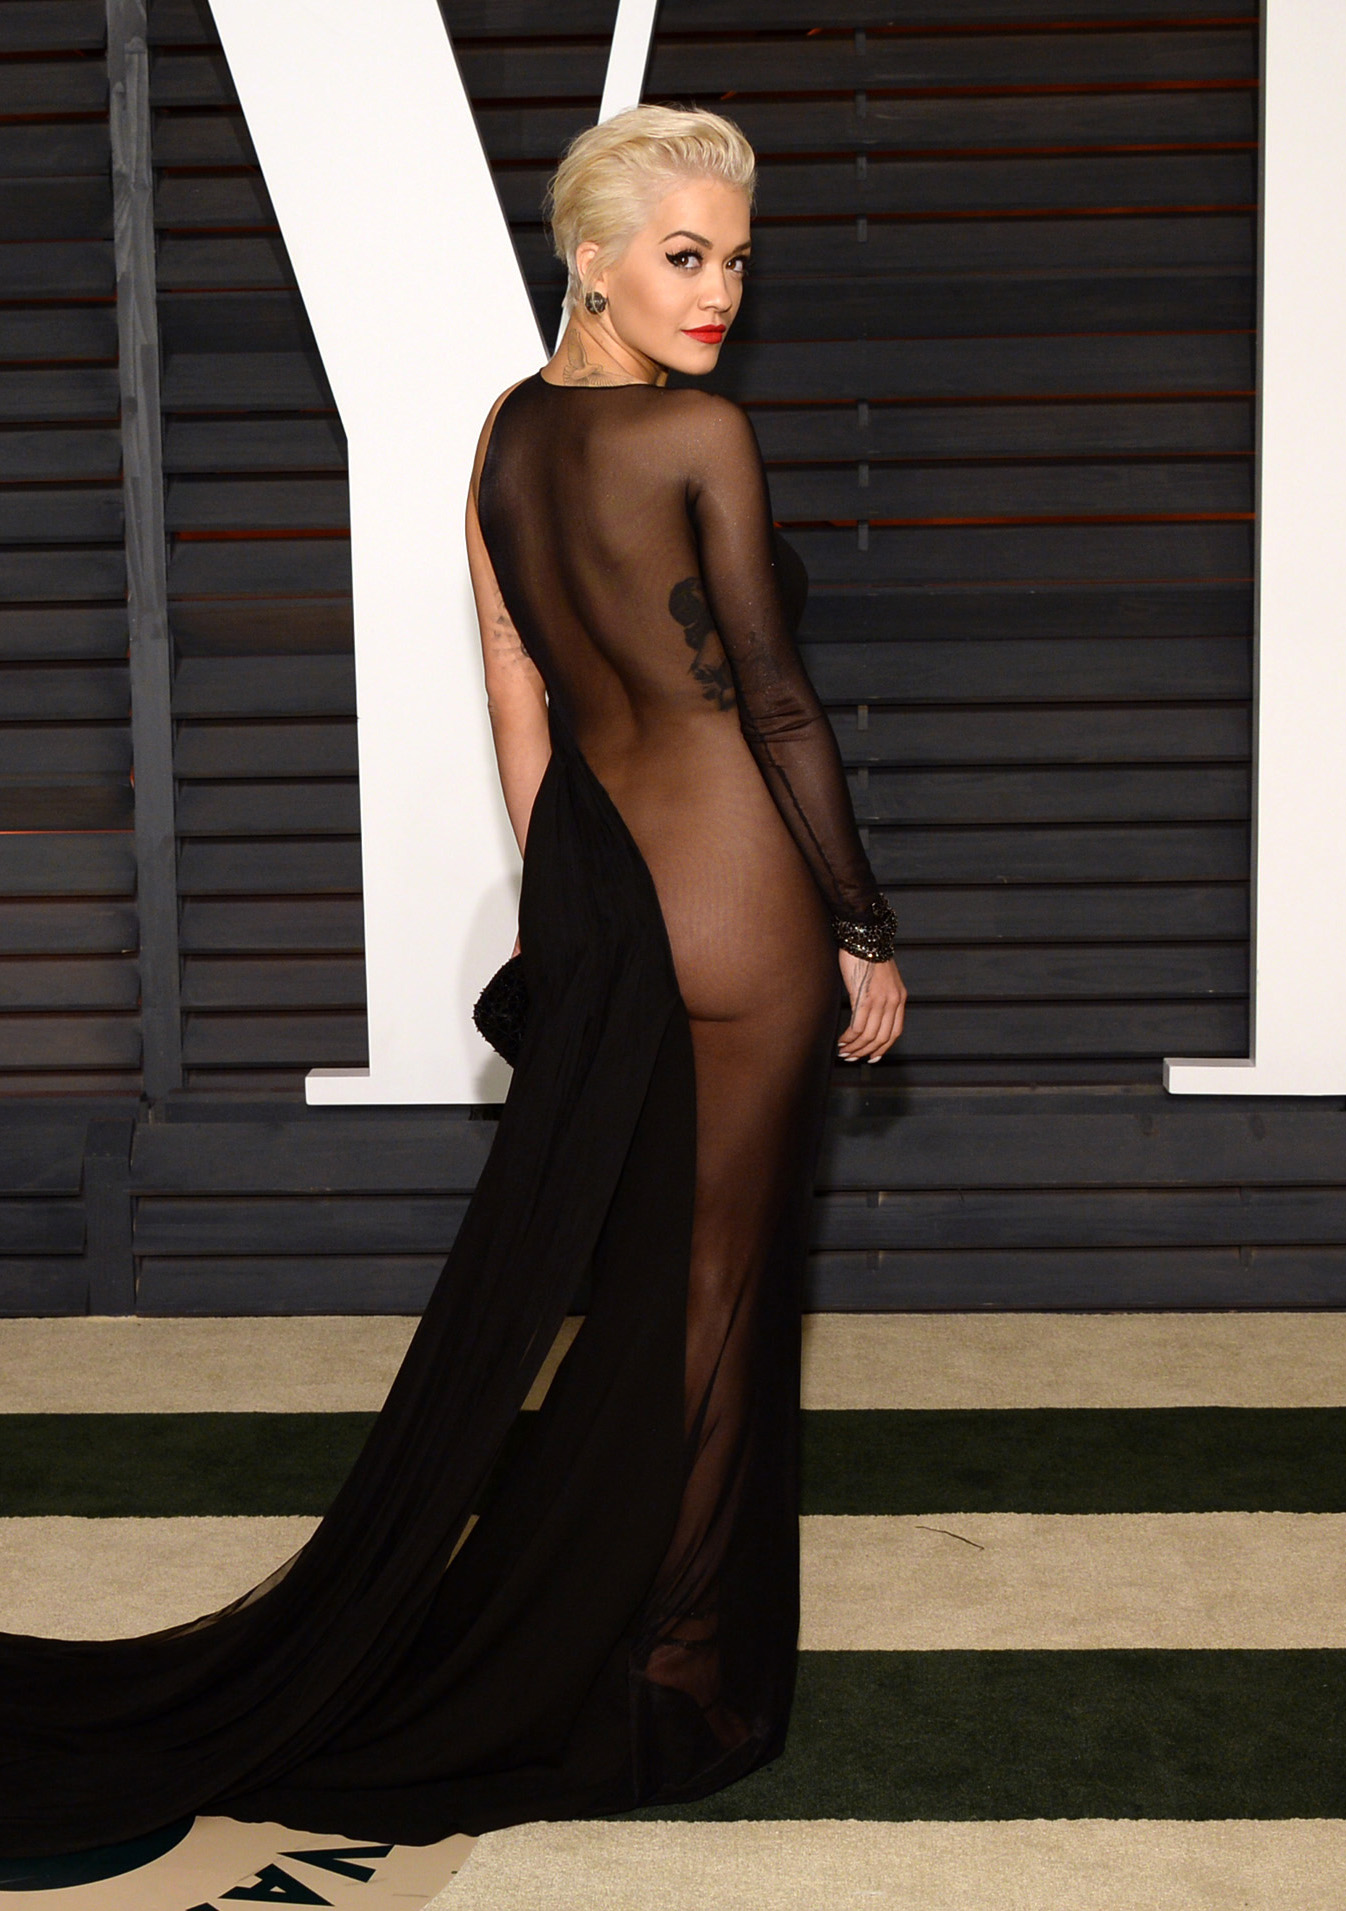 rita-ora-see-through-dress-vanity-fair-oscar-party-7